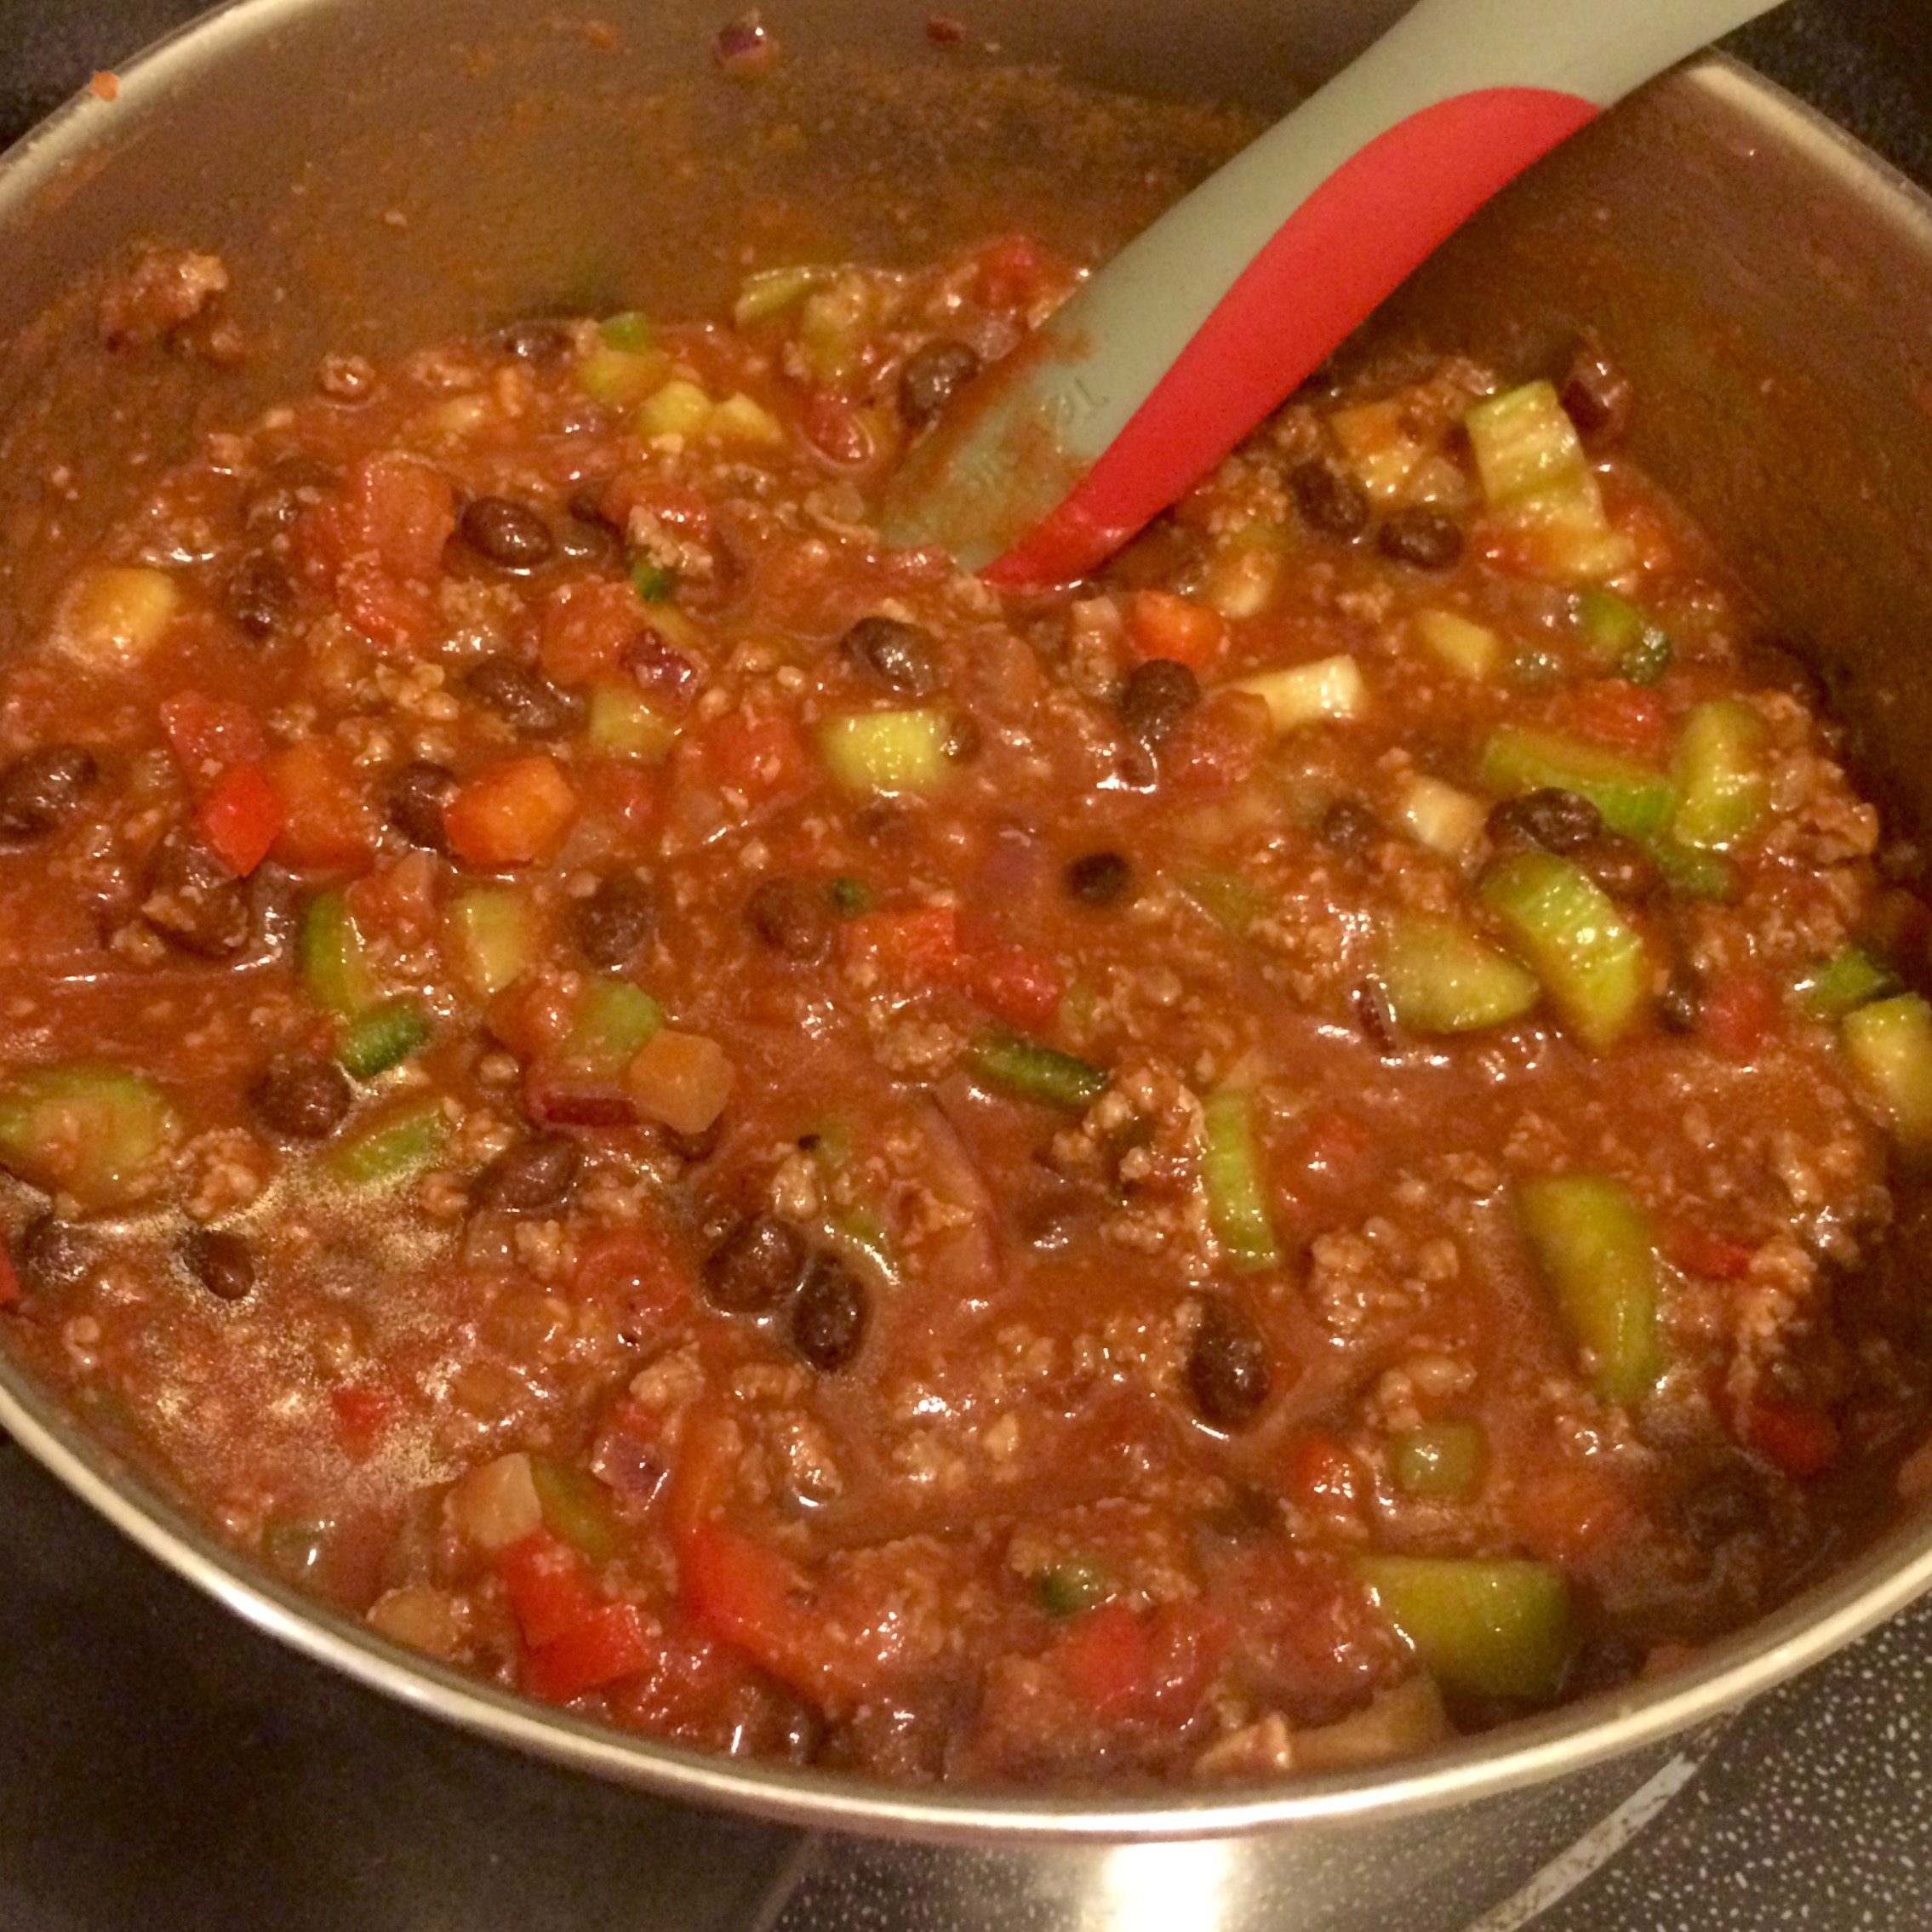 Easy recipes to make chili